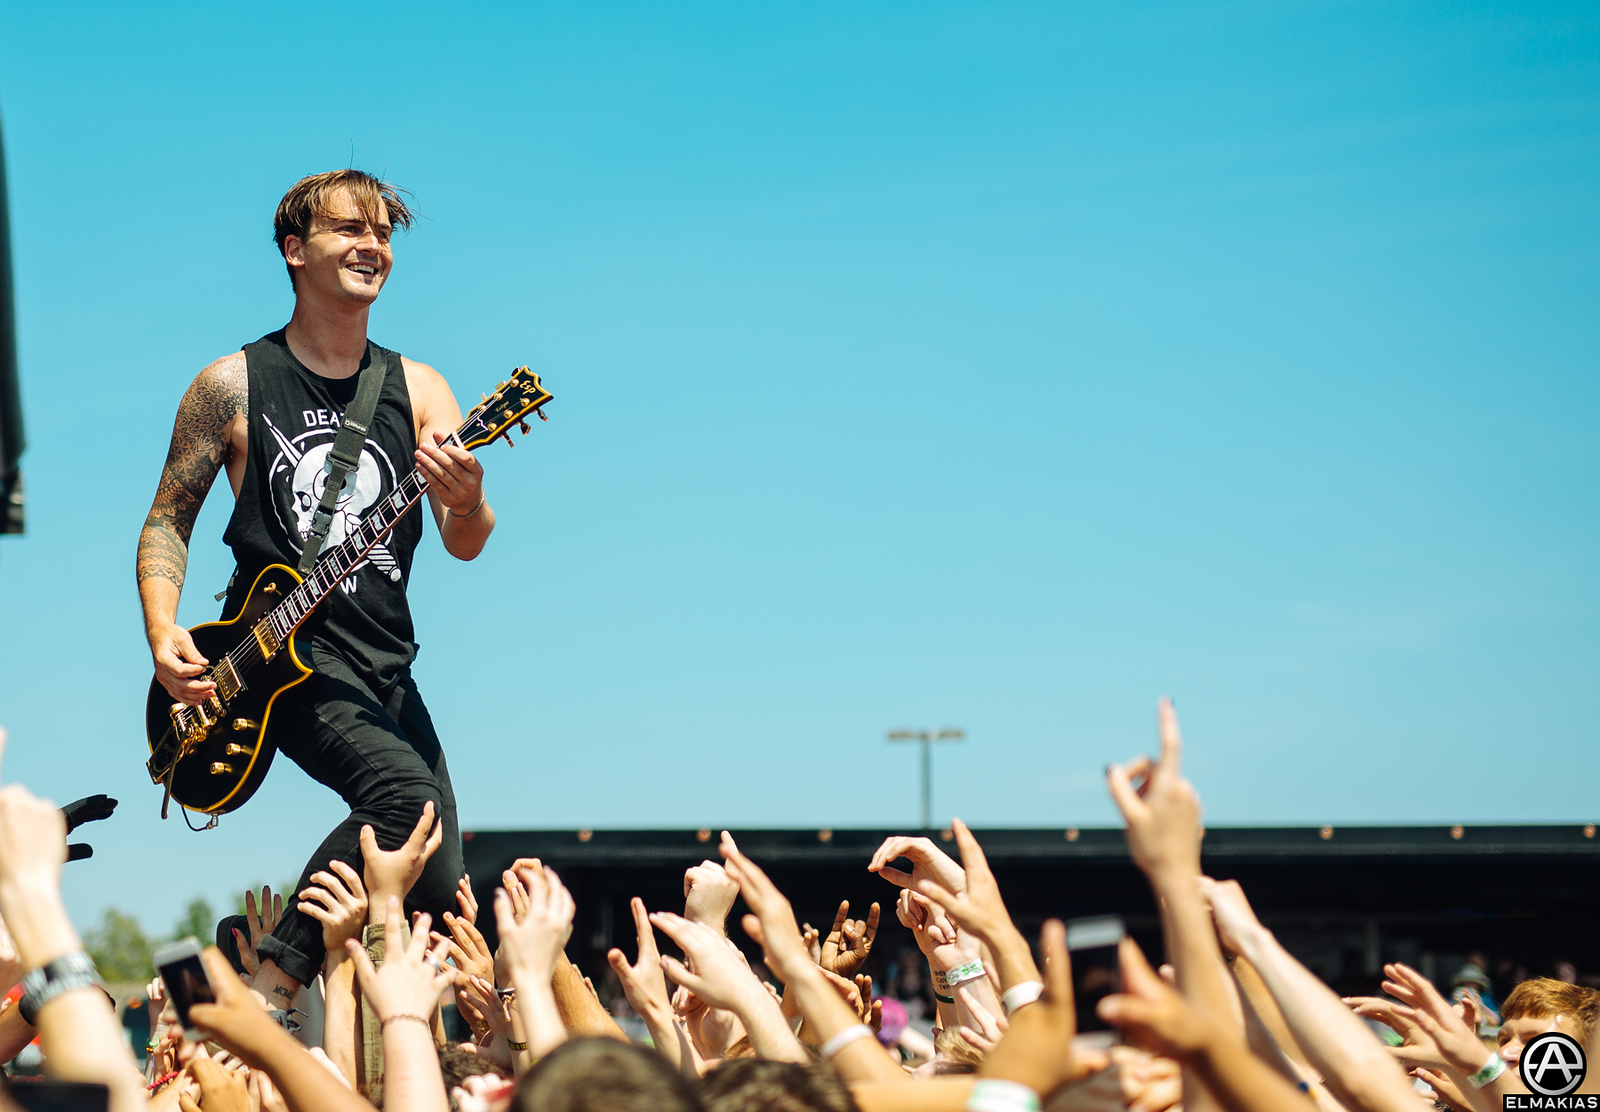 Kamron Bradbury of Beartooth live at Vans Warped Tour 2015 by Adam Elmakias